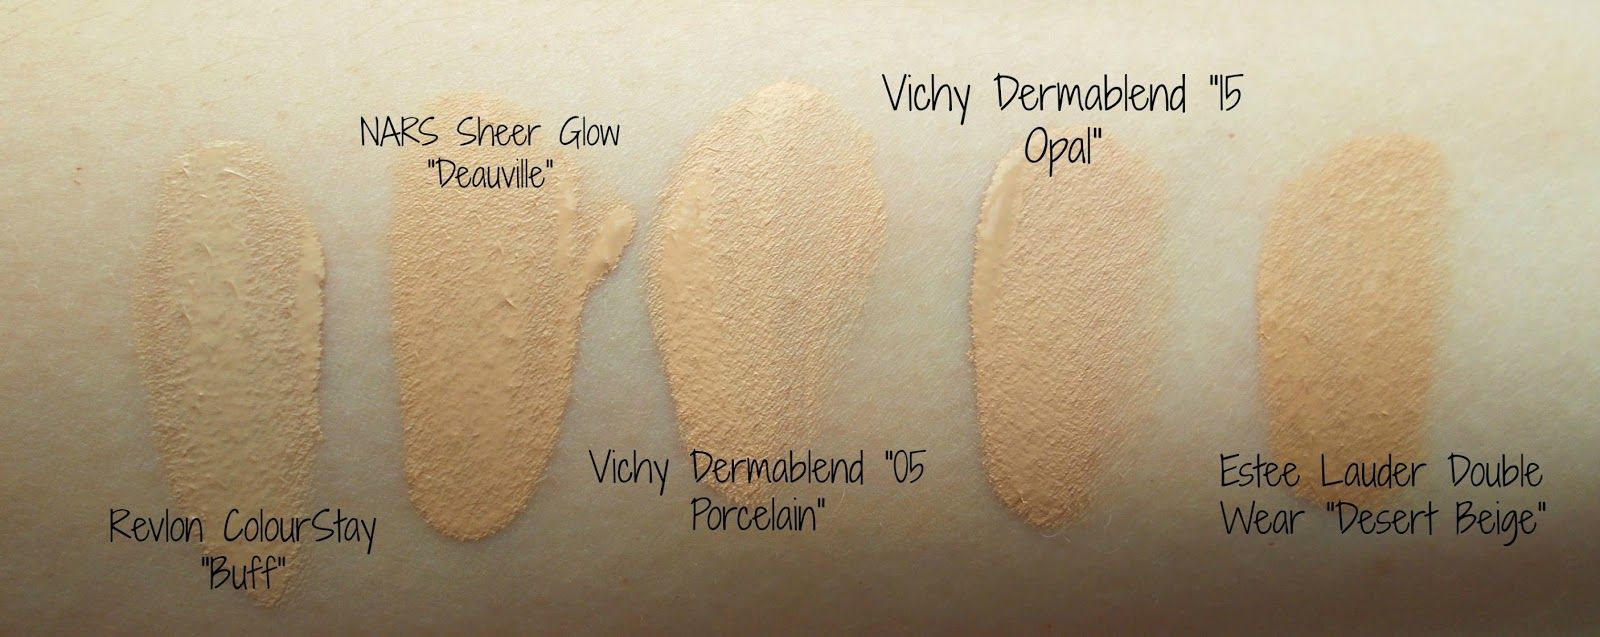 Danielle S Beauty Blog Vichy Dermablend Fluid Corrective Foundation And Setting Powder Review Dermablend Vichy Setting Powder